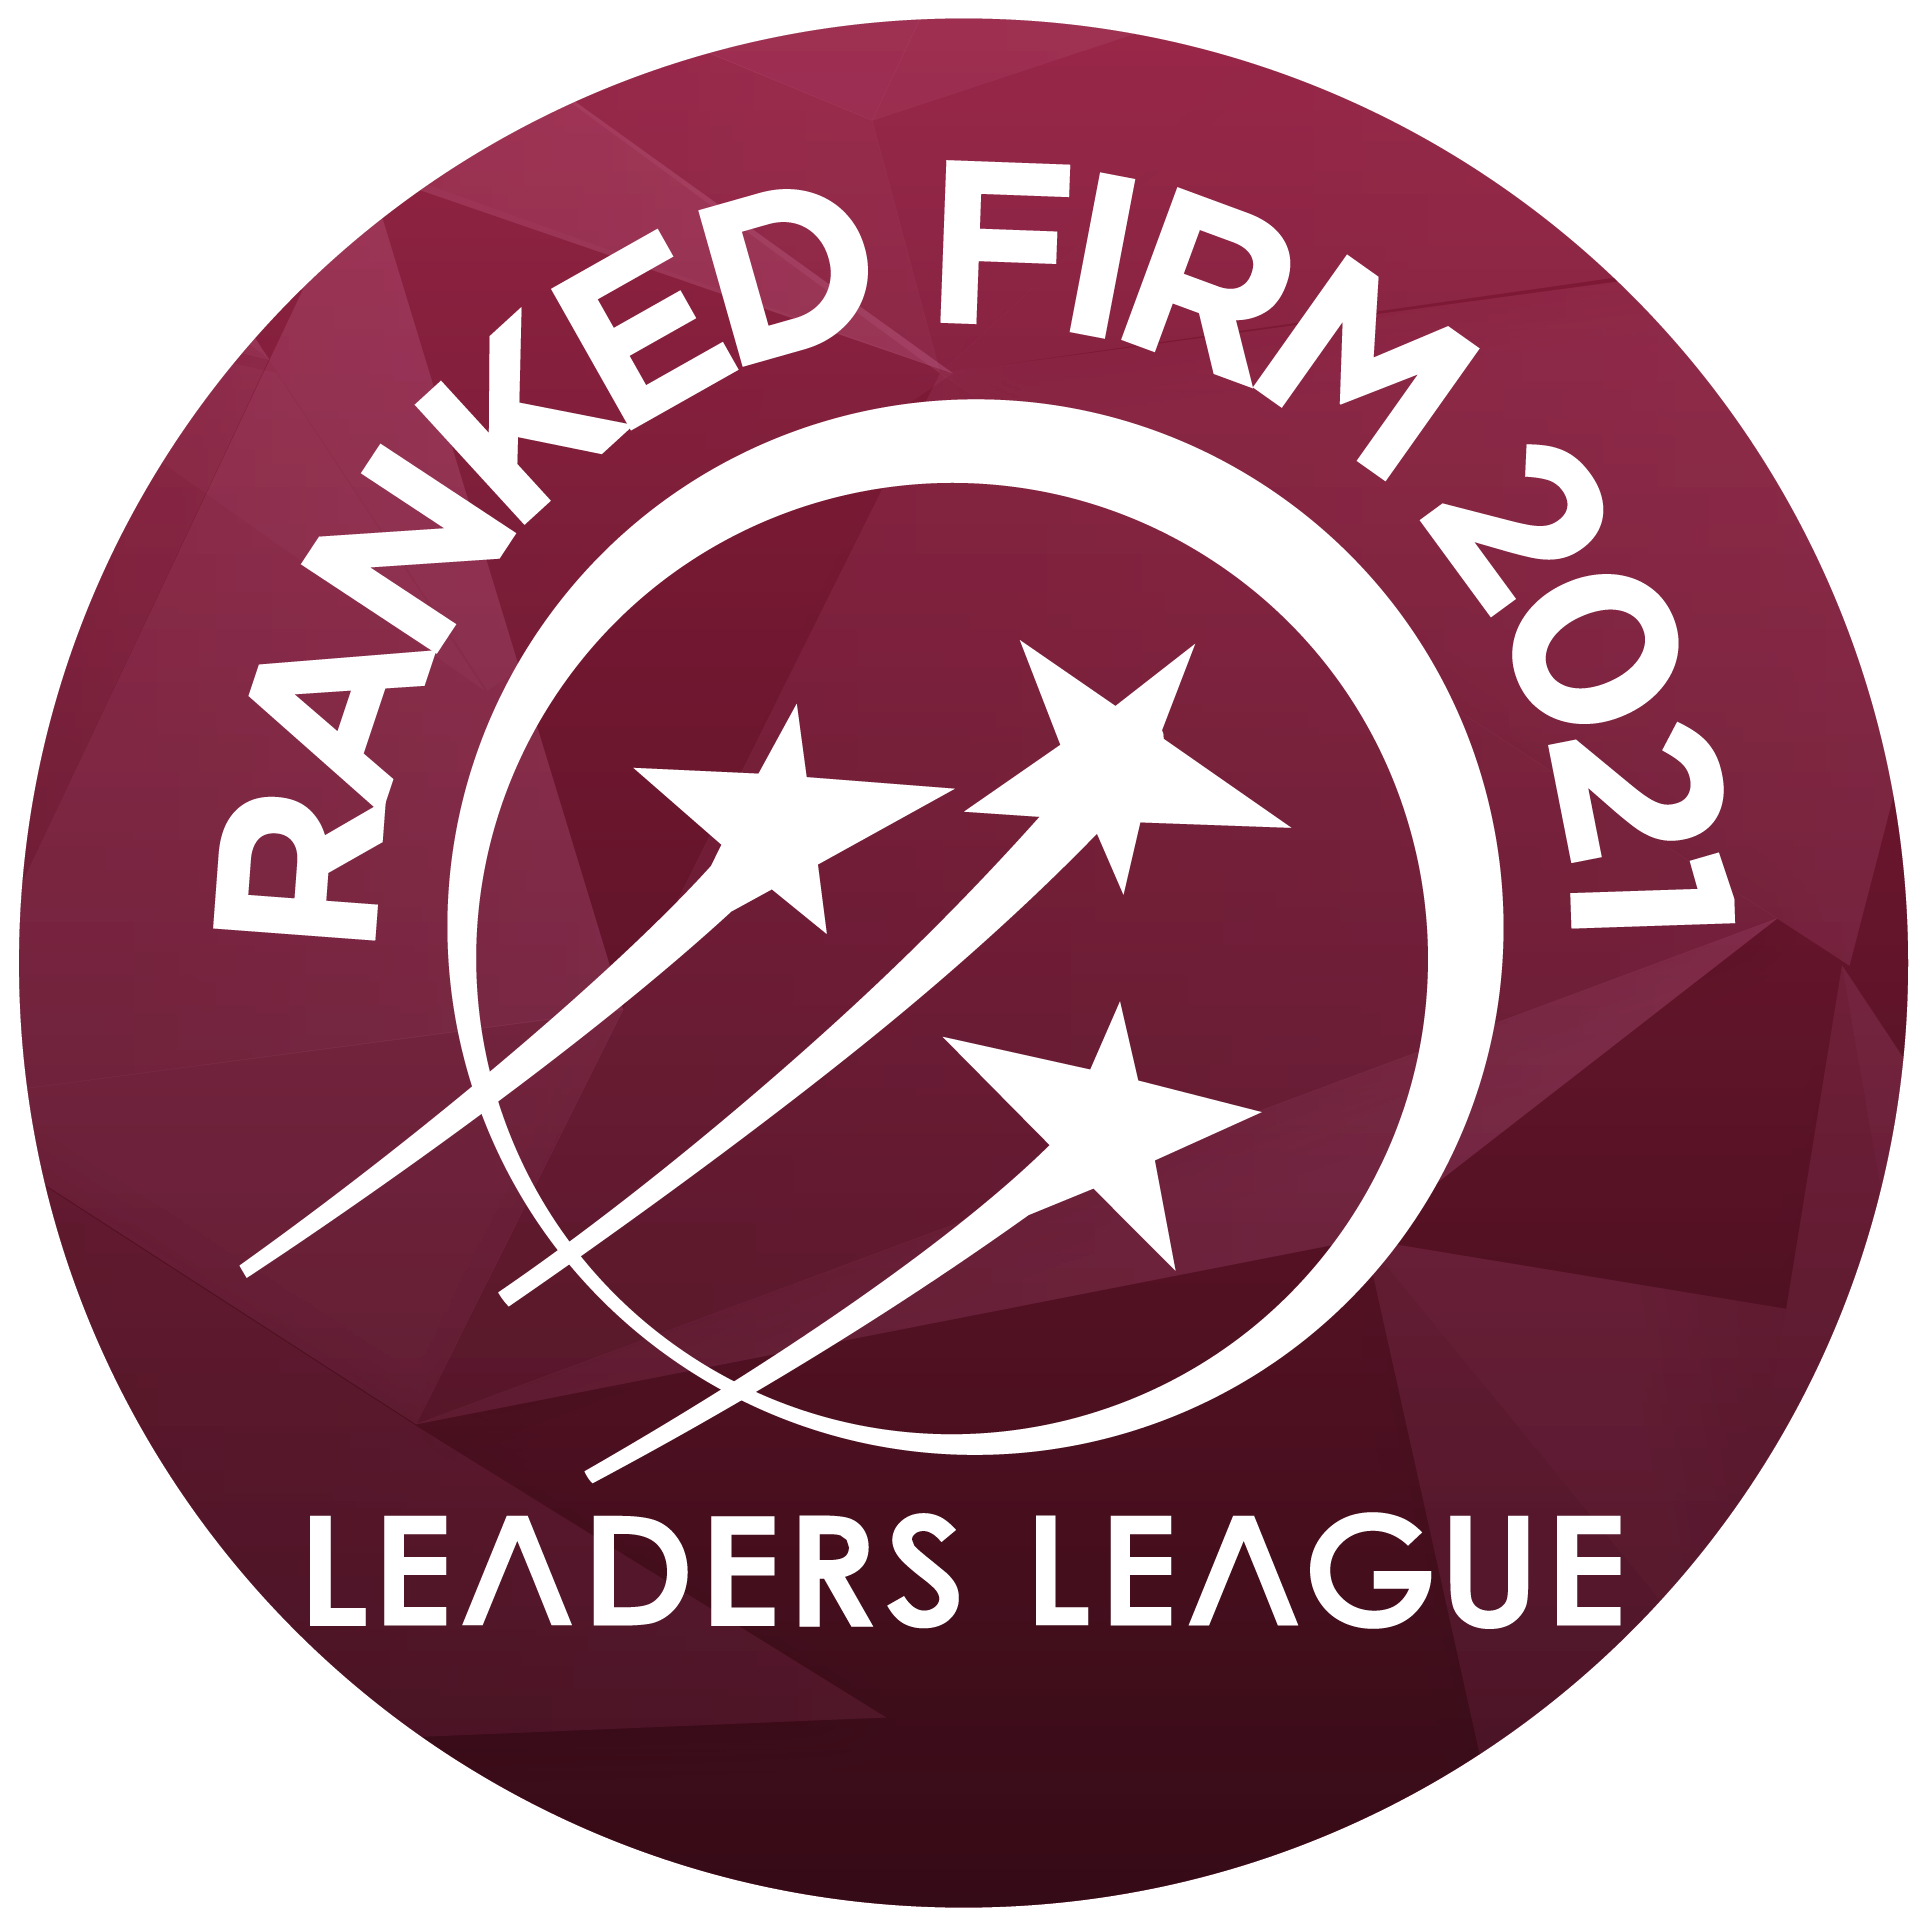 LEADERS LEAGUE 2021